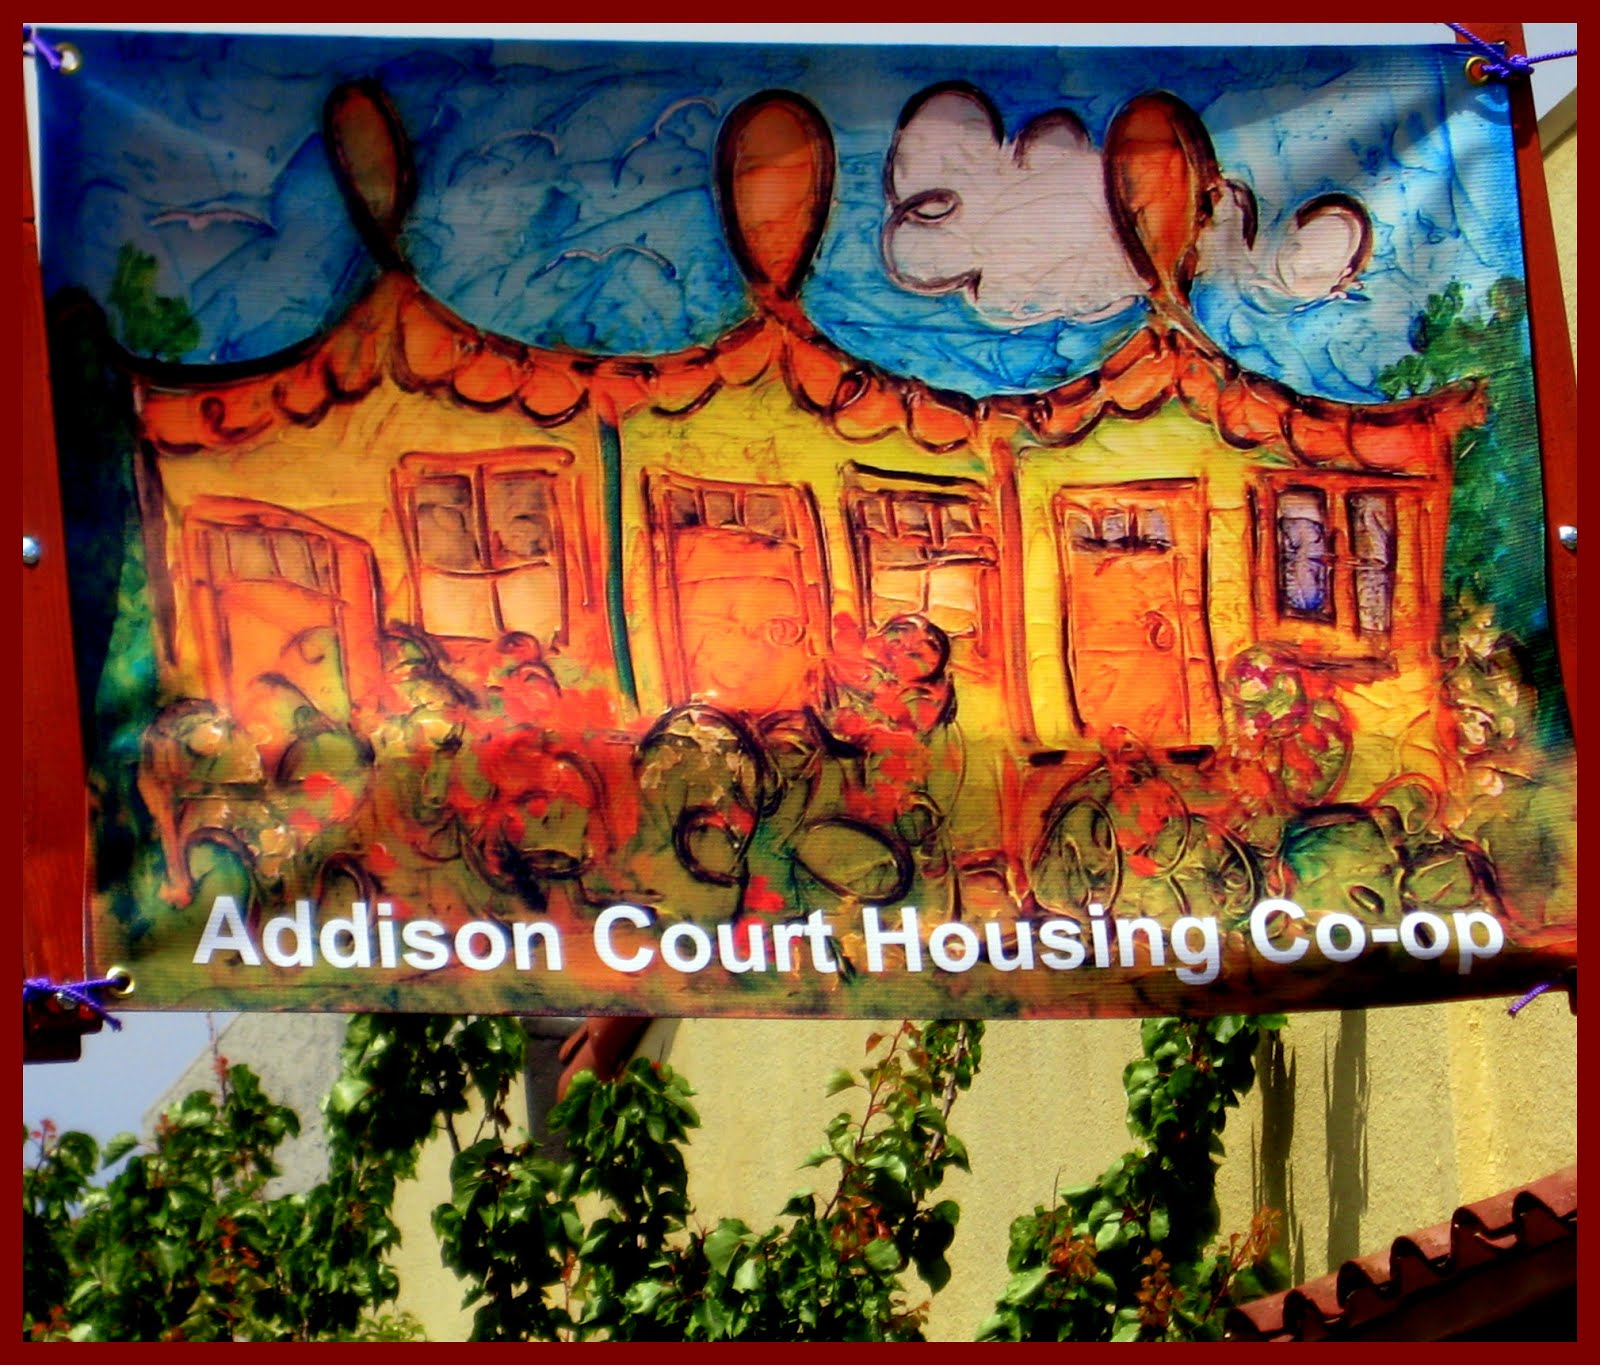 Equity Apartments Login: Addison Court Housing Cooperative